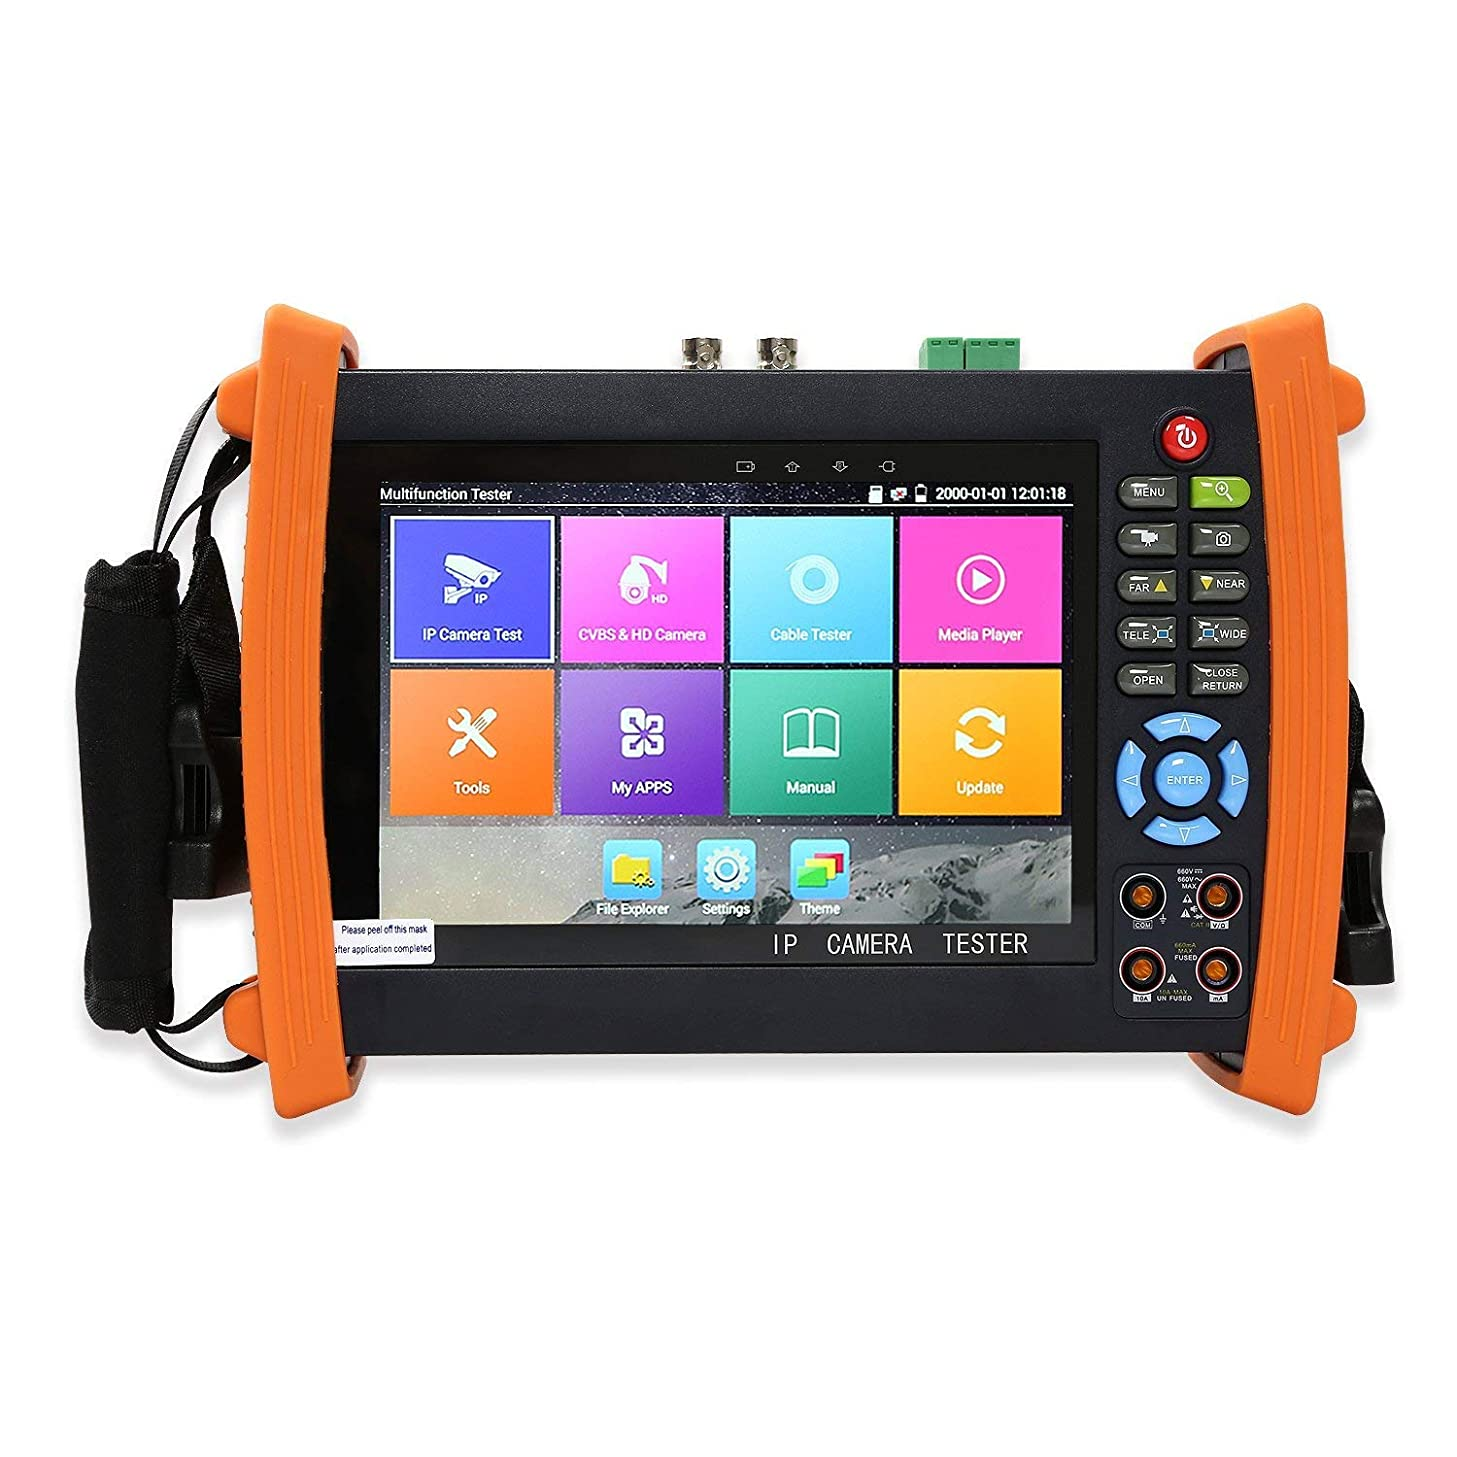 Electop Upgrade IP Camera Tester 7 Inch Retina Display Analog Camera Tester CCTV Tester H.265 PTZ Control POE HDMI Input and Output Rapid ONVIF WiFi with Digital Multimeter ET-8600M Plus